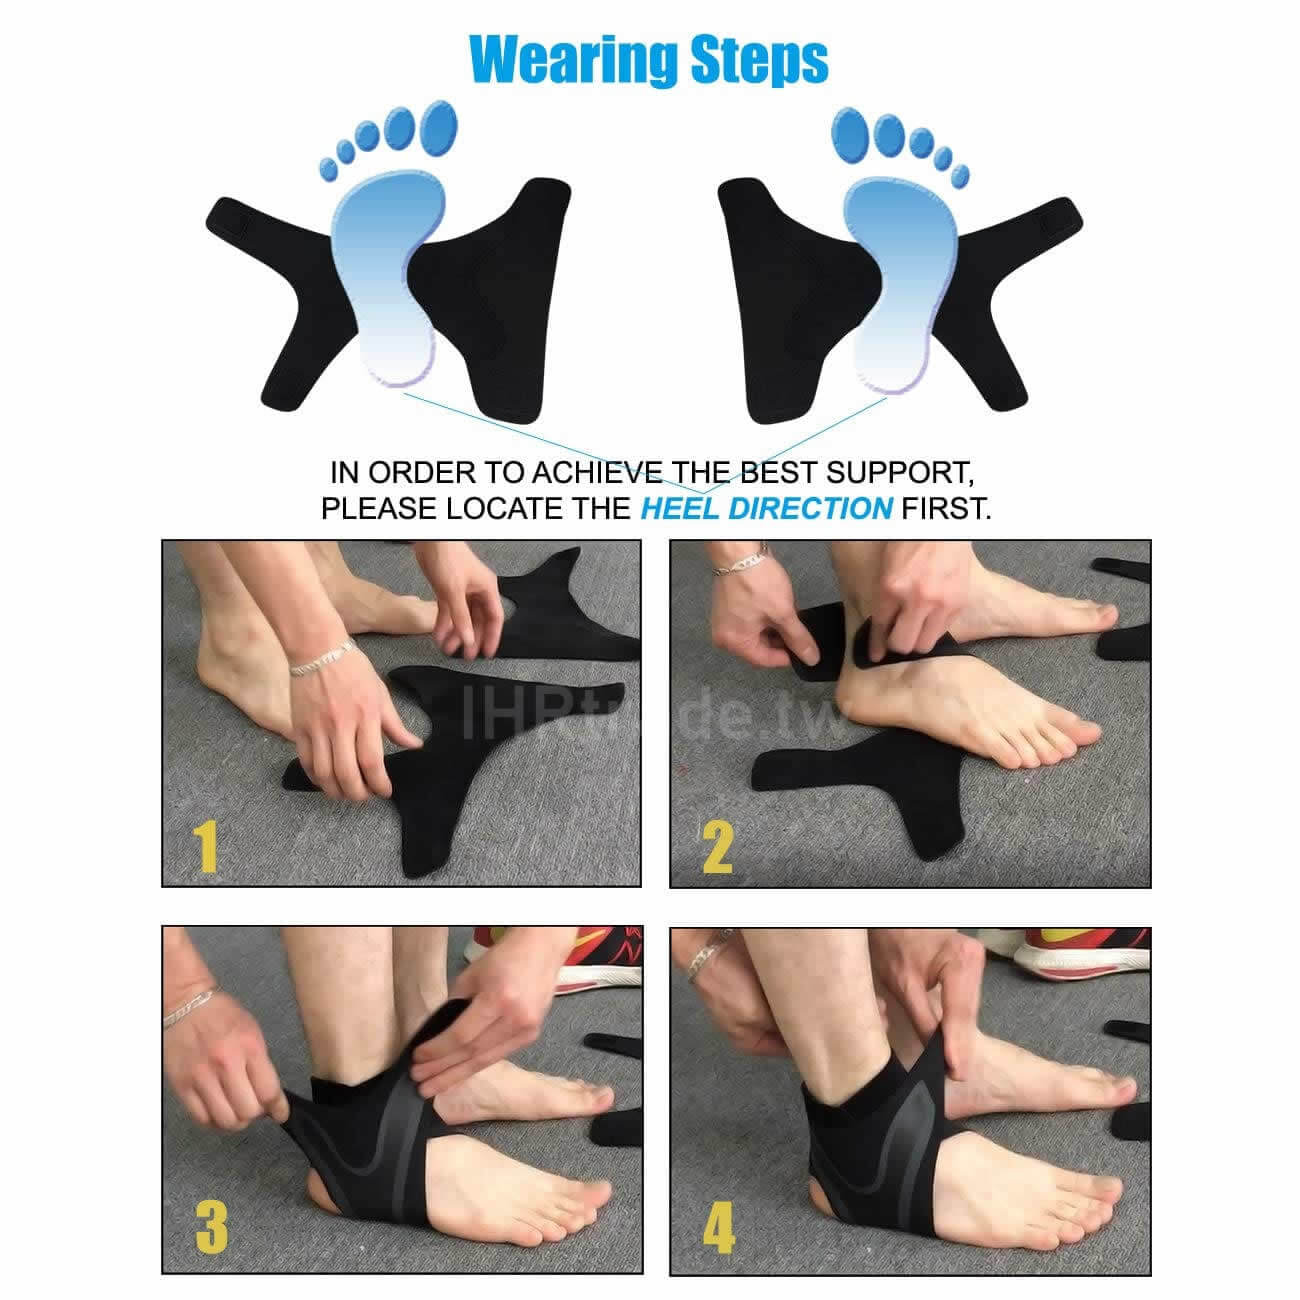 Ihrtrade,Travel & Outdoors,26605471-left-foot,Ankle Brace For Sprain,Ankle Braces For Volleyball